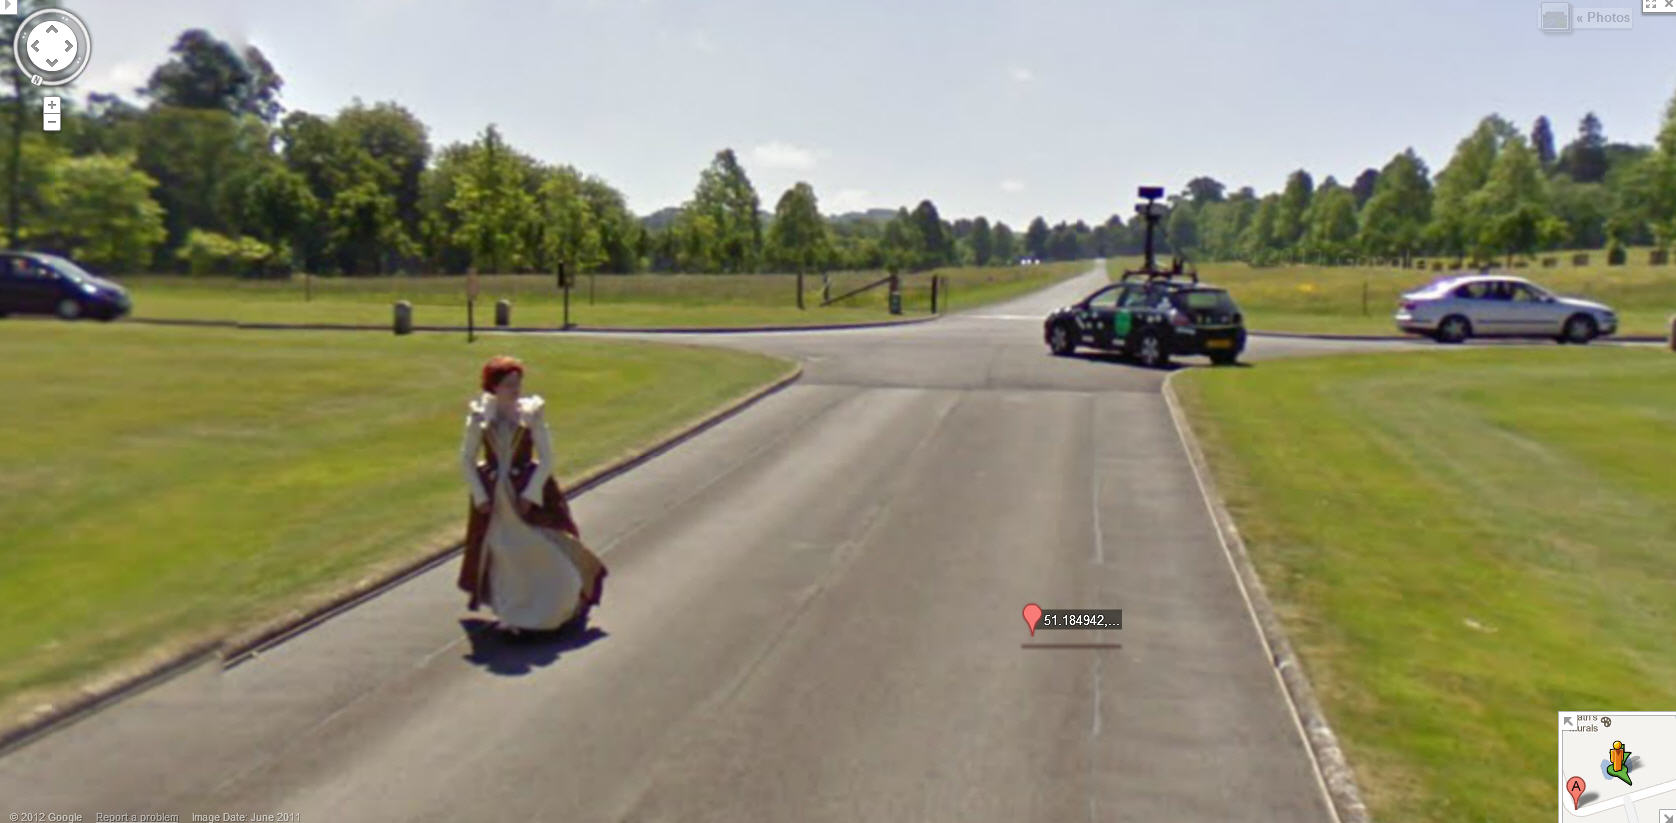 Google Street View Captures Queen Mary At Longleat House In The Uk